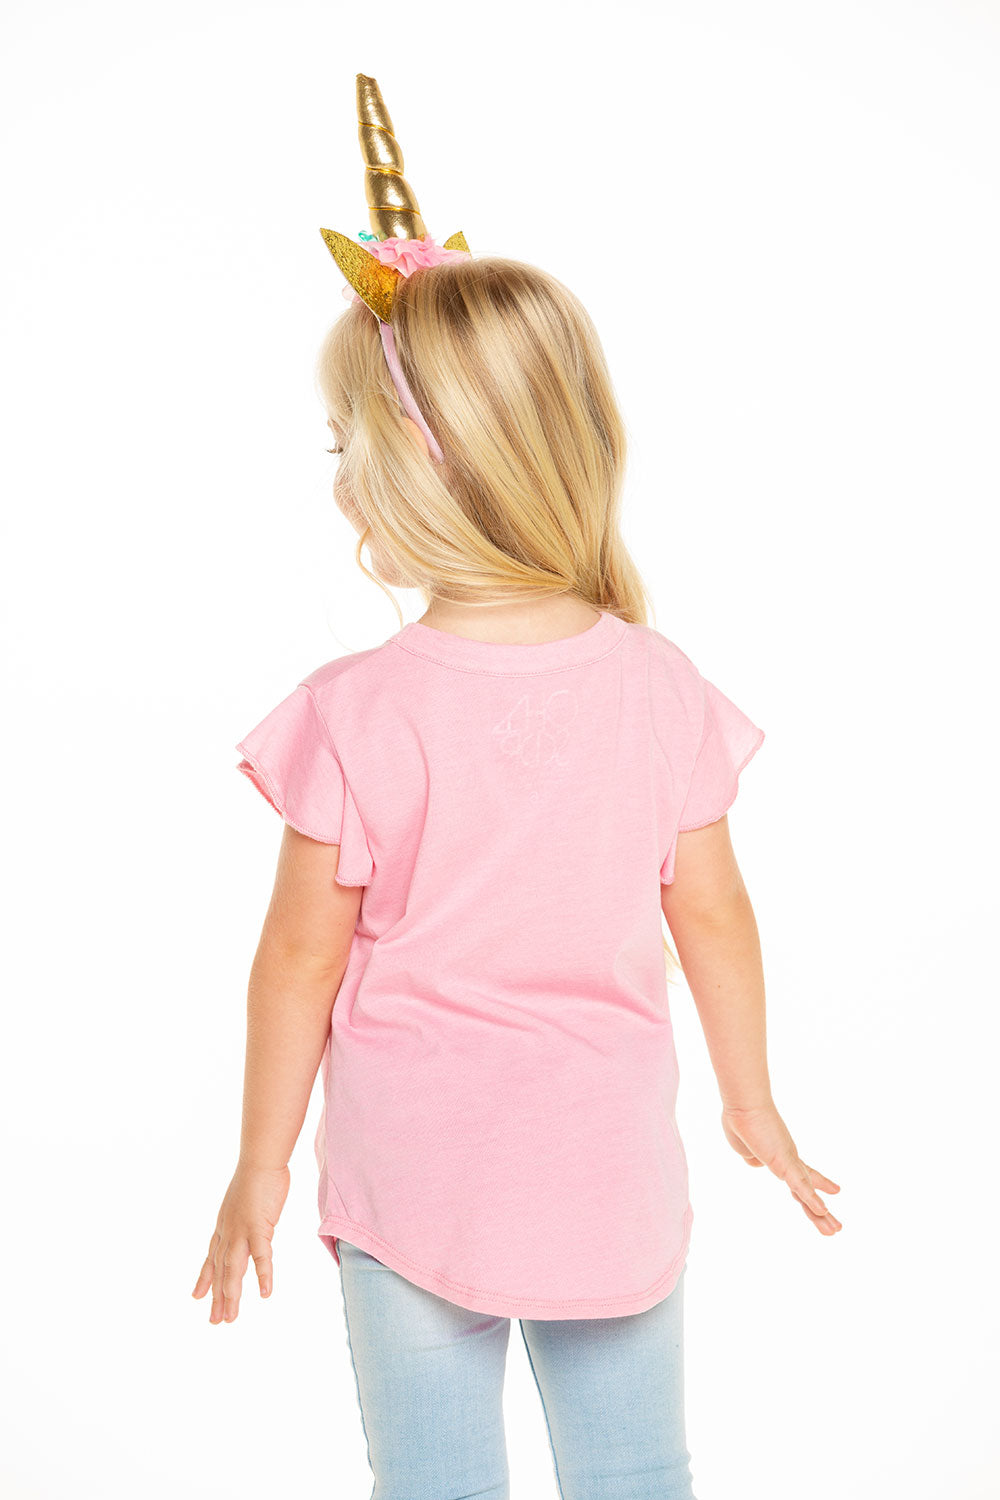 Recycled Vintage Jersey Shirred Flutter Sleeve Tee in Carnation Pink GIRLS - chaserbrand